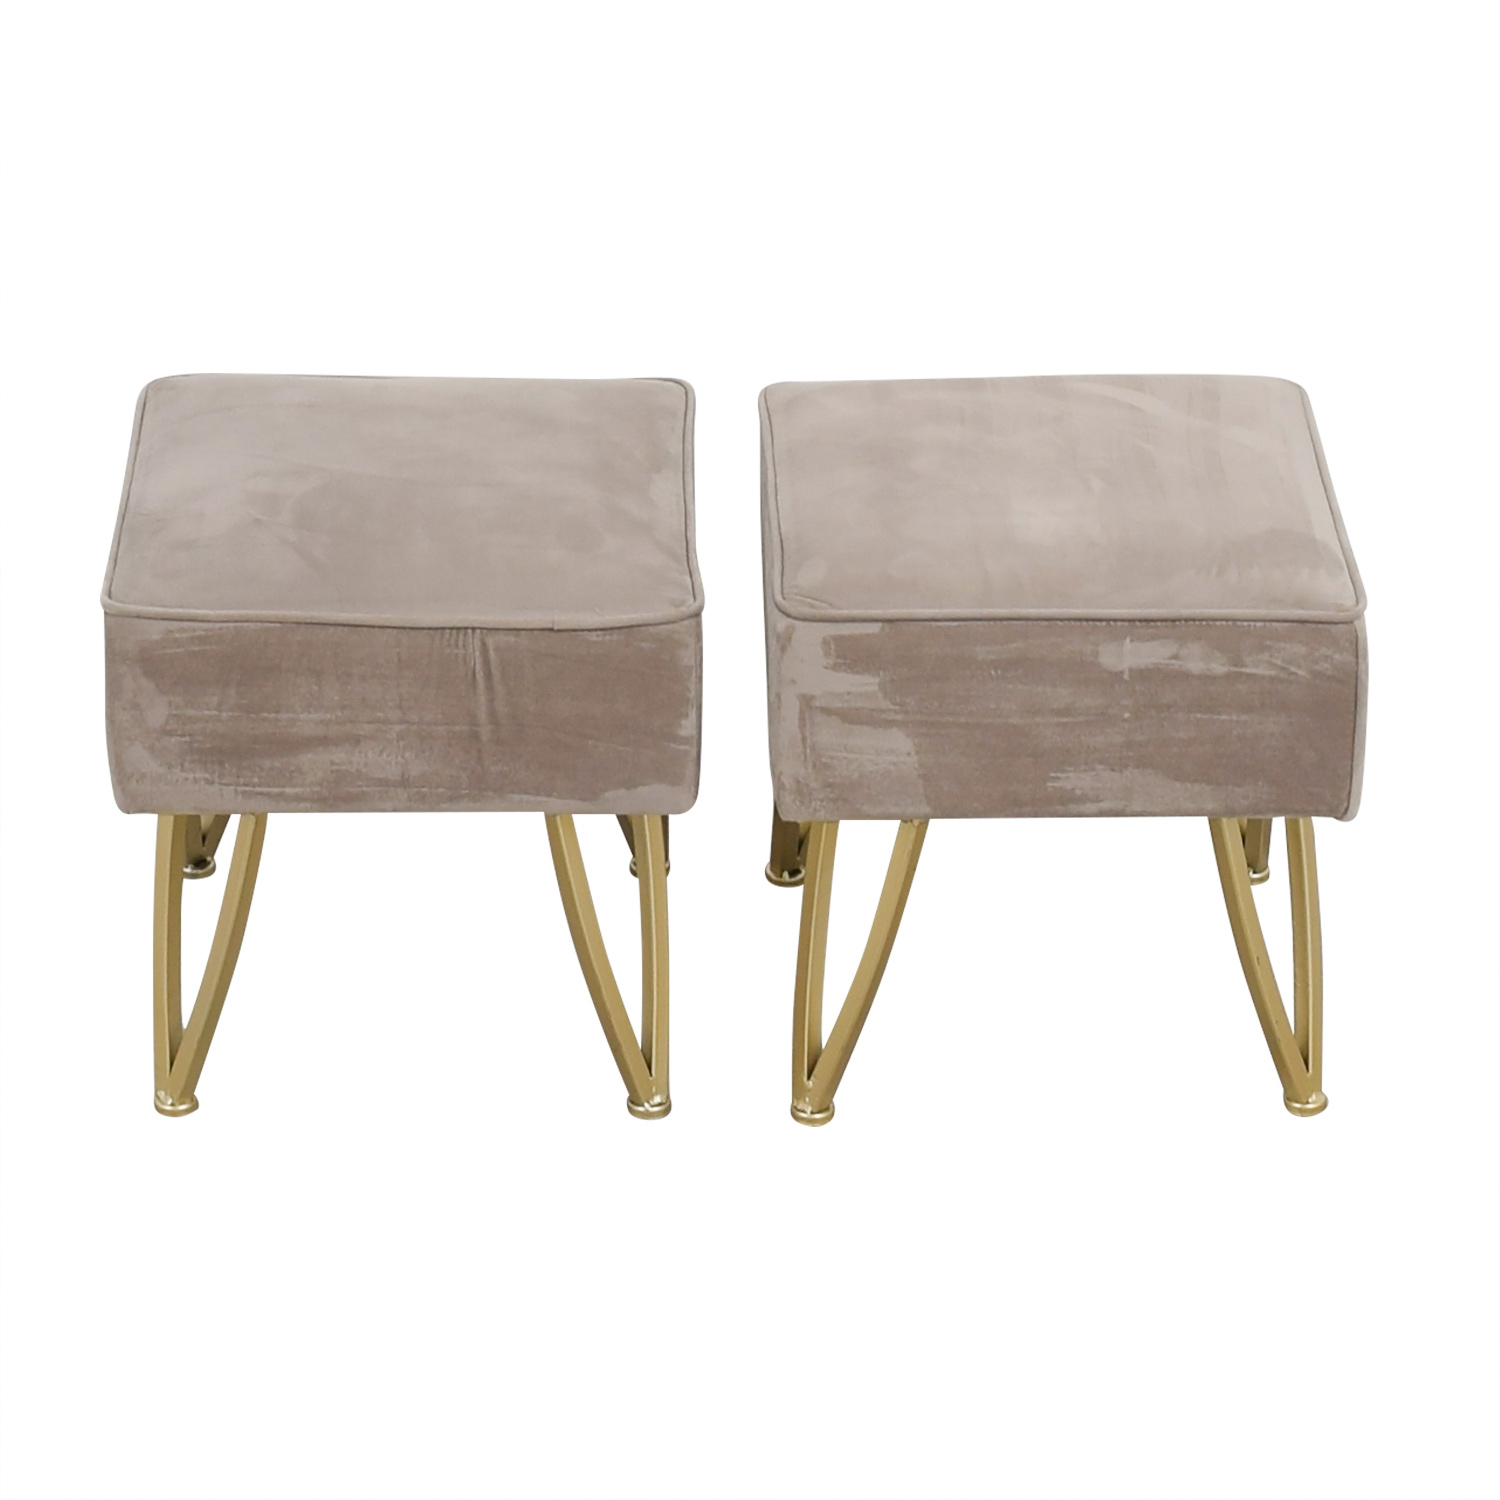 World Market World Market Velvet Gray and Gold Stools or Ottomans GREY/GOLD LEGS